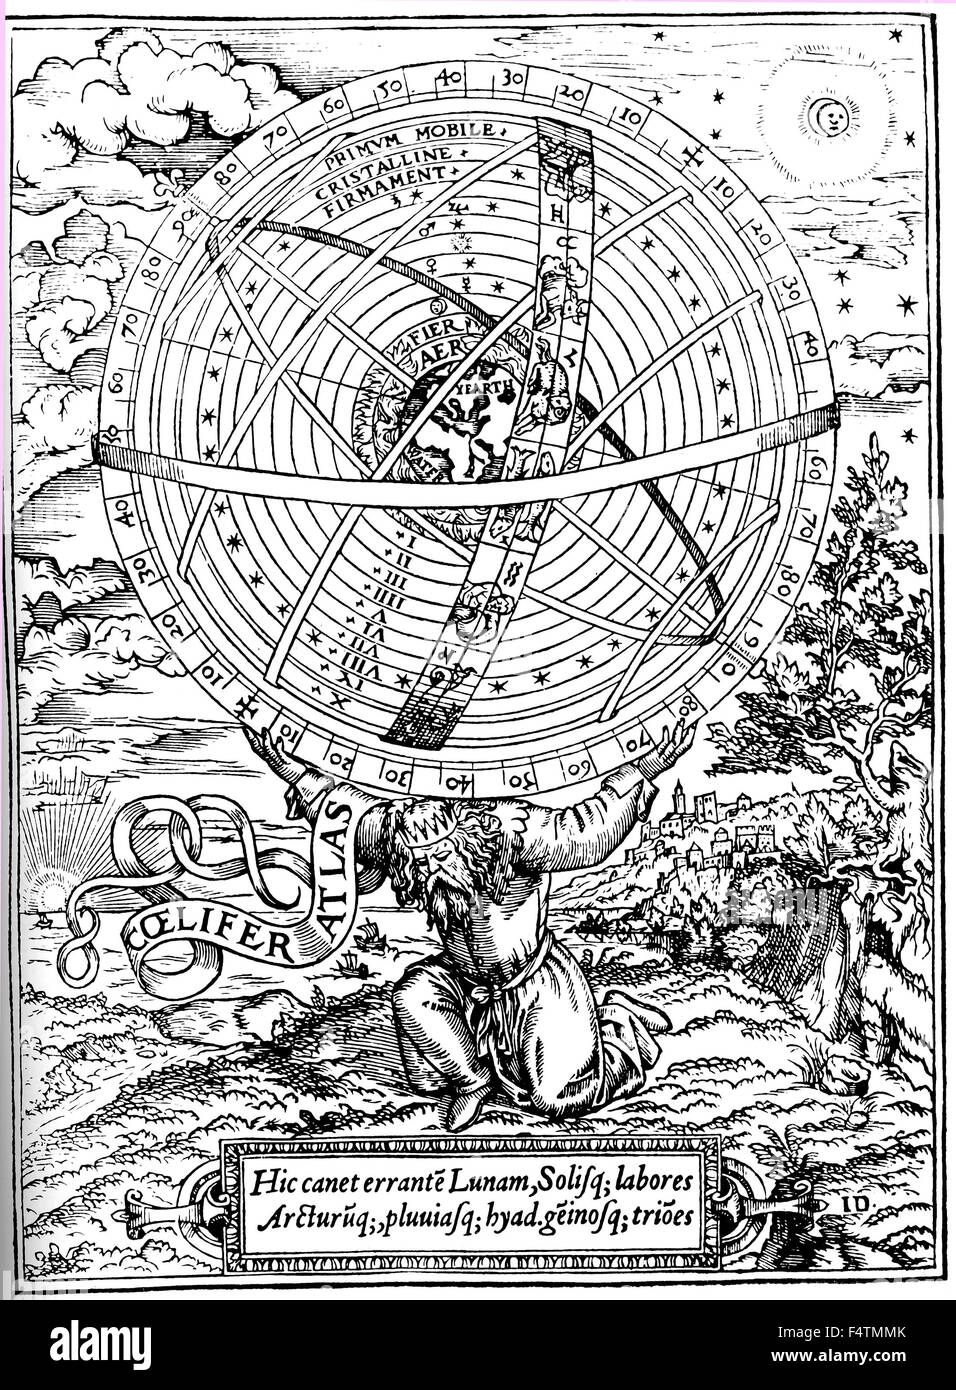 PTOLEMAIC UNIVERSE Woodcut from William Cunningham's 'Cosmological Glasse' published in London in 1559 - Stock Image